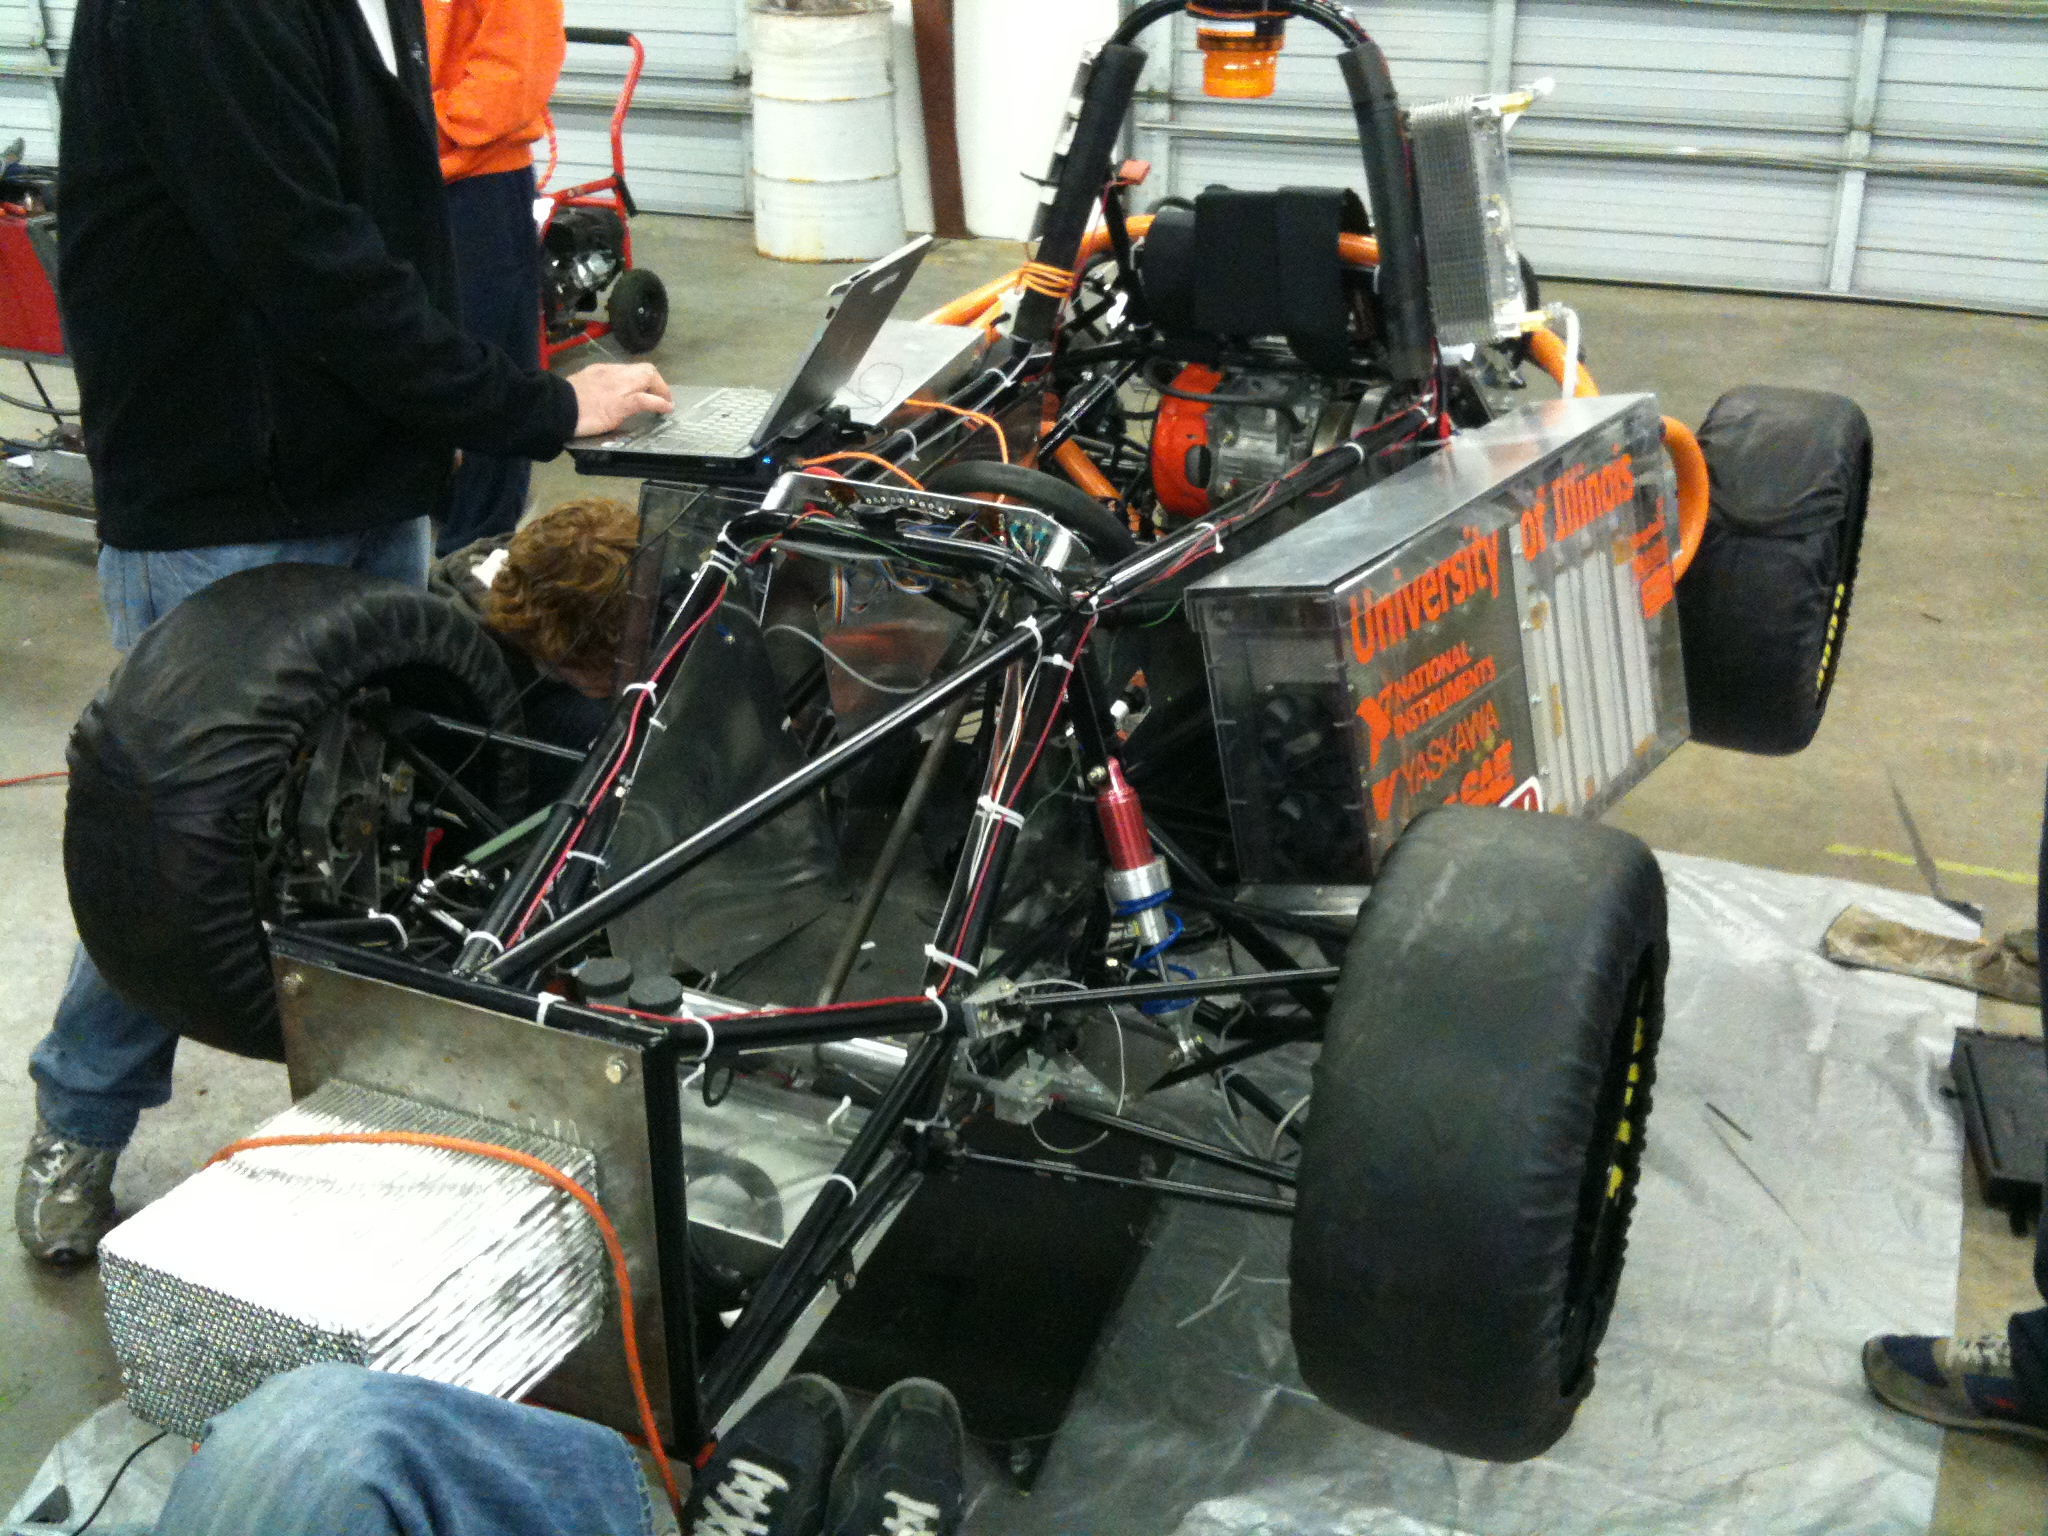 Working on the car at competition